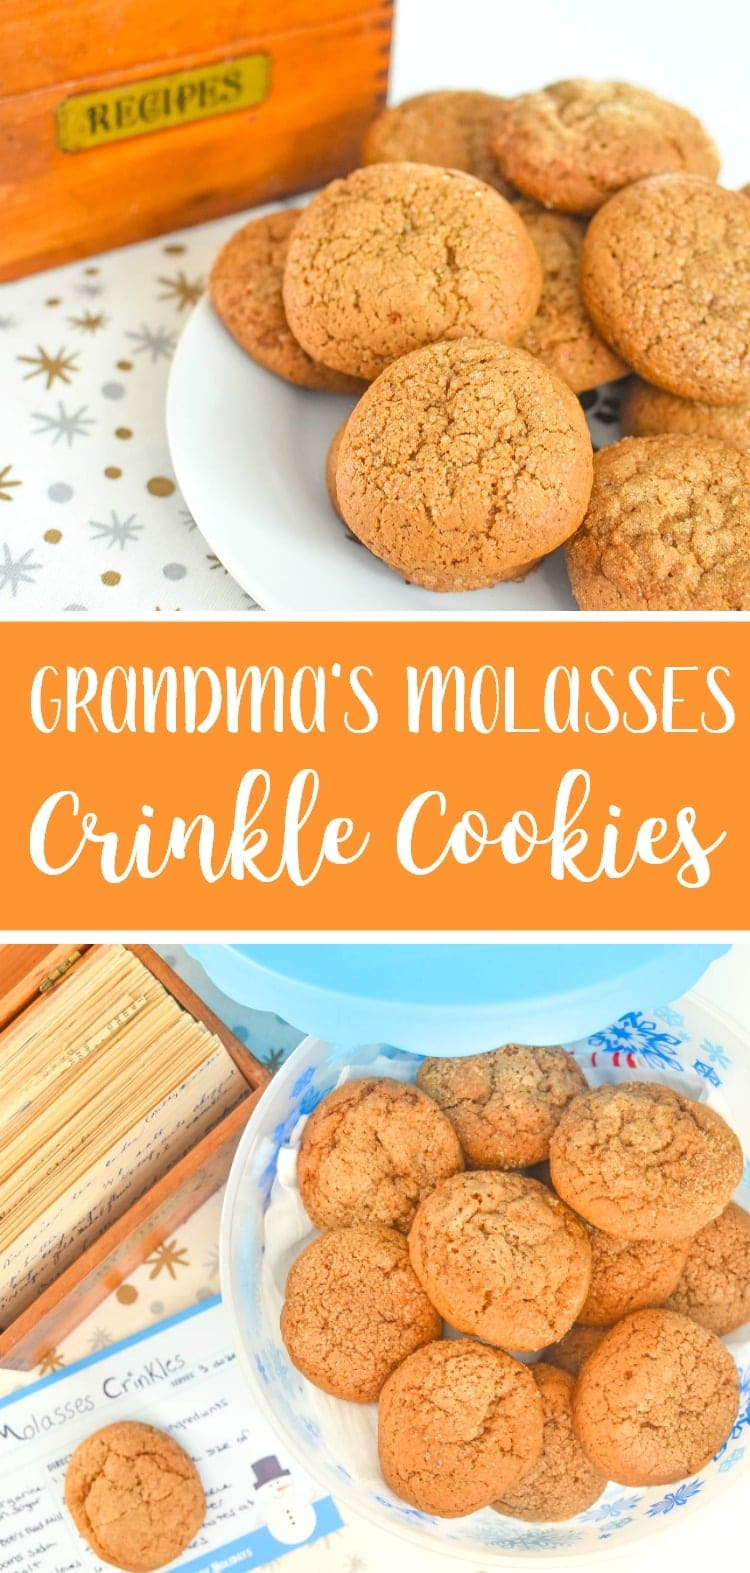 Grandma's Molasses Crinkle Cookies Recipe